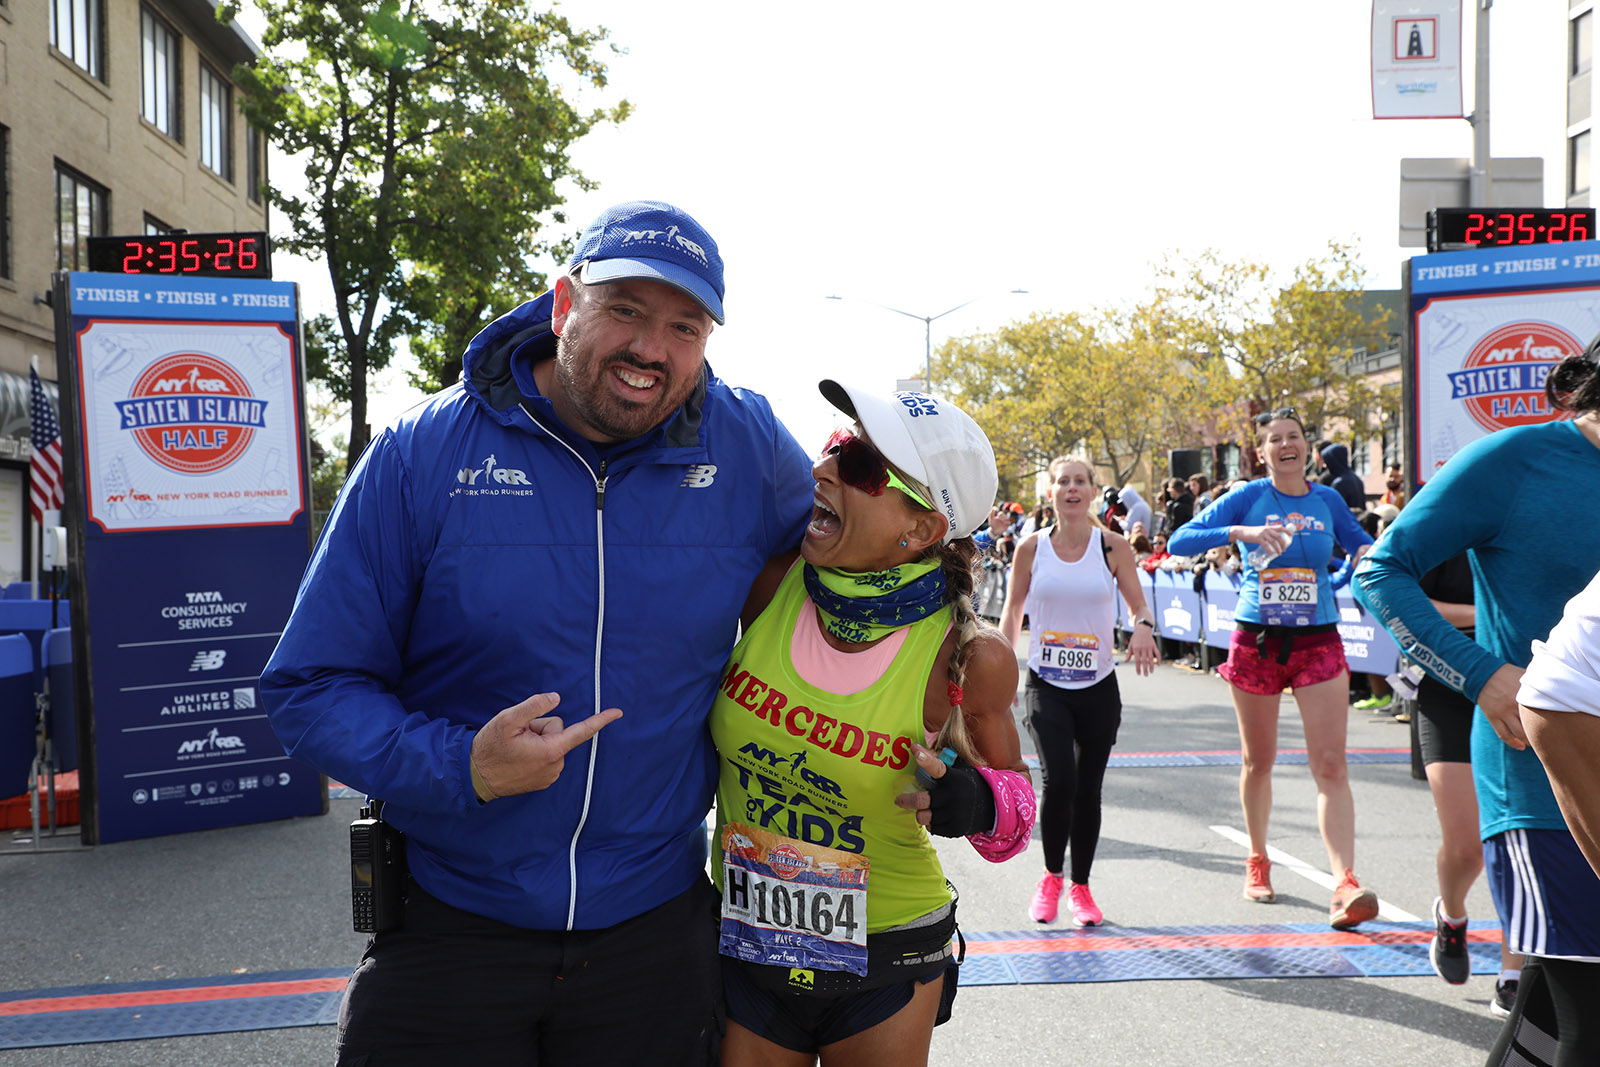 A Team for Kids finisher with Jim Heim, SVP, Event Development & Production, Race Director, TCS New York City Marathon